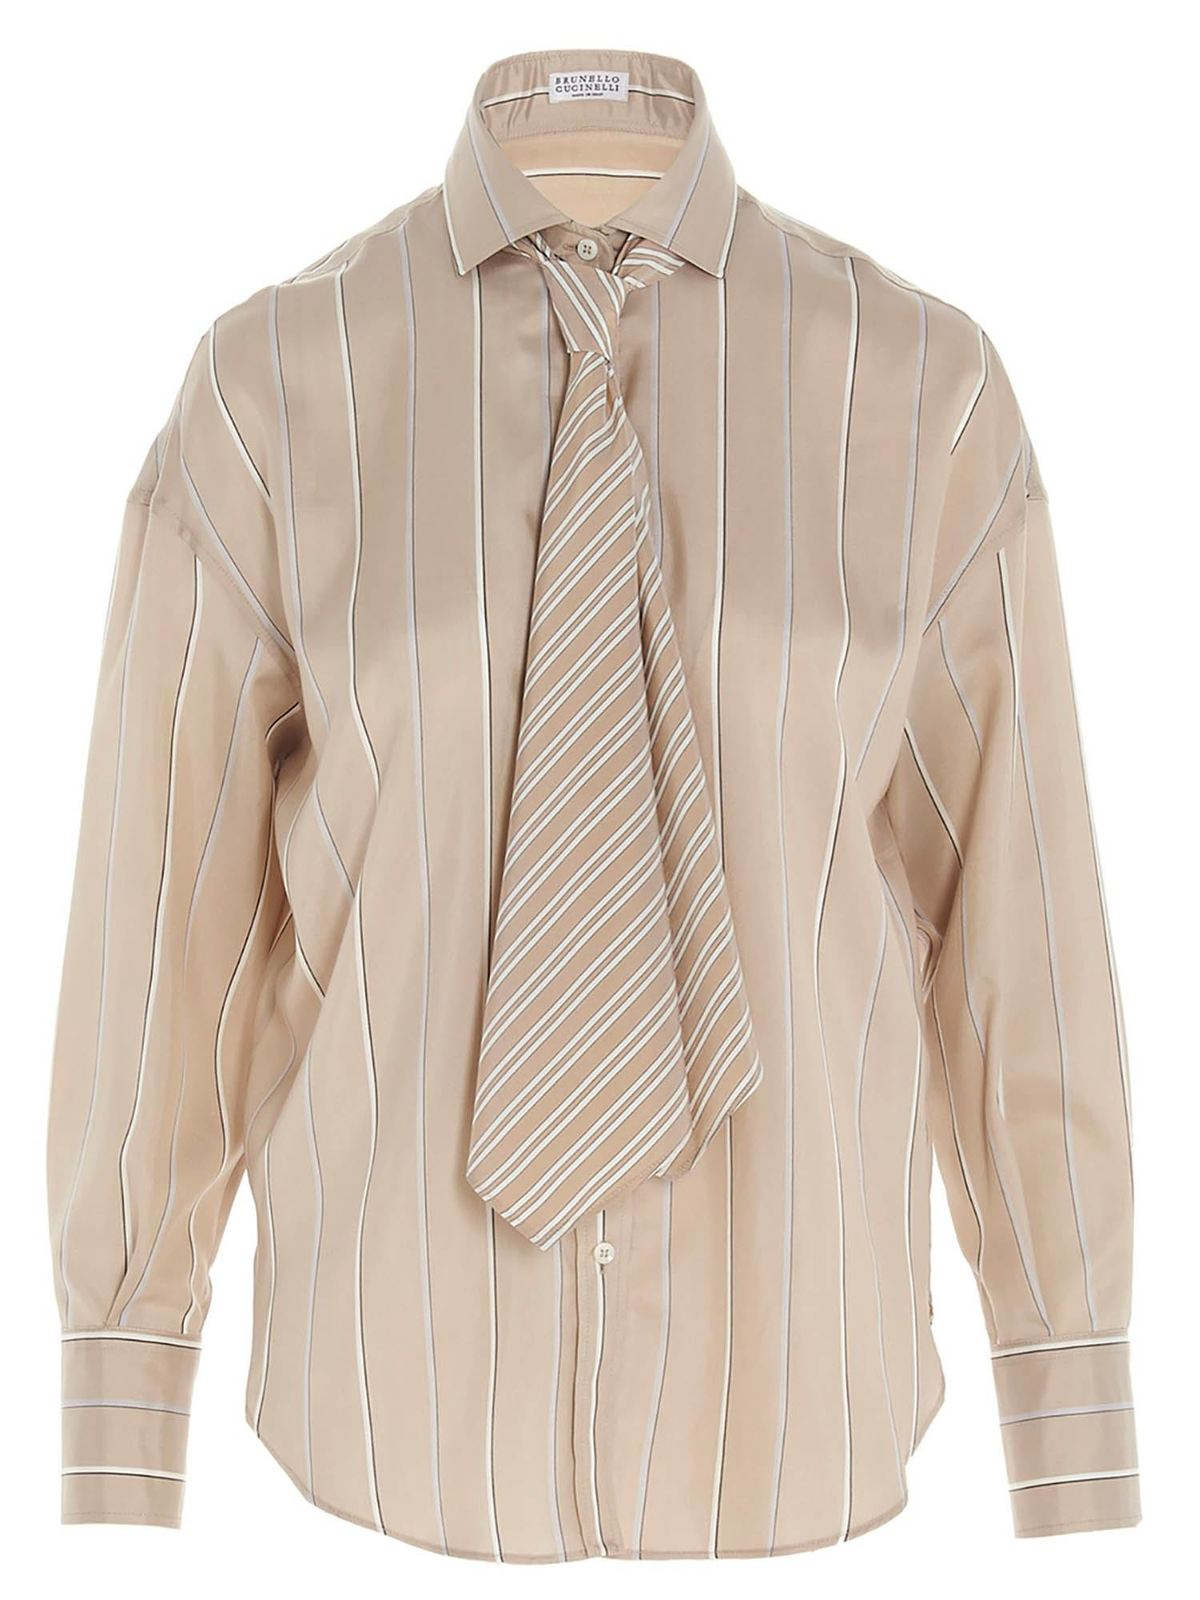 Brunello Cucinelli STRIPED SHIRT WITH TIE IN BEIGE